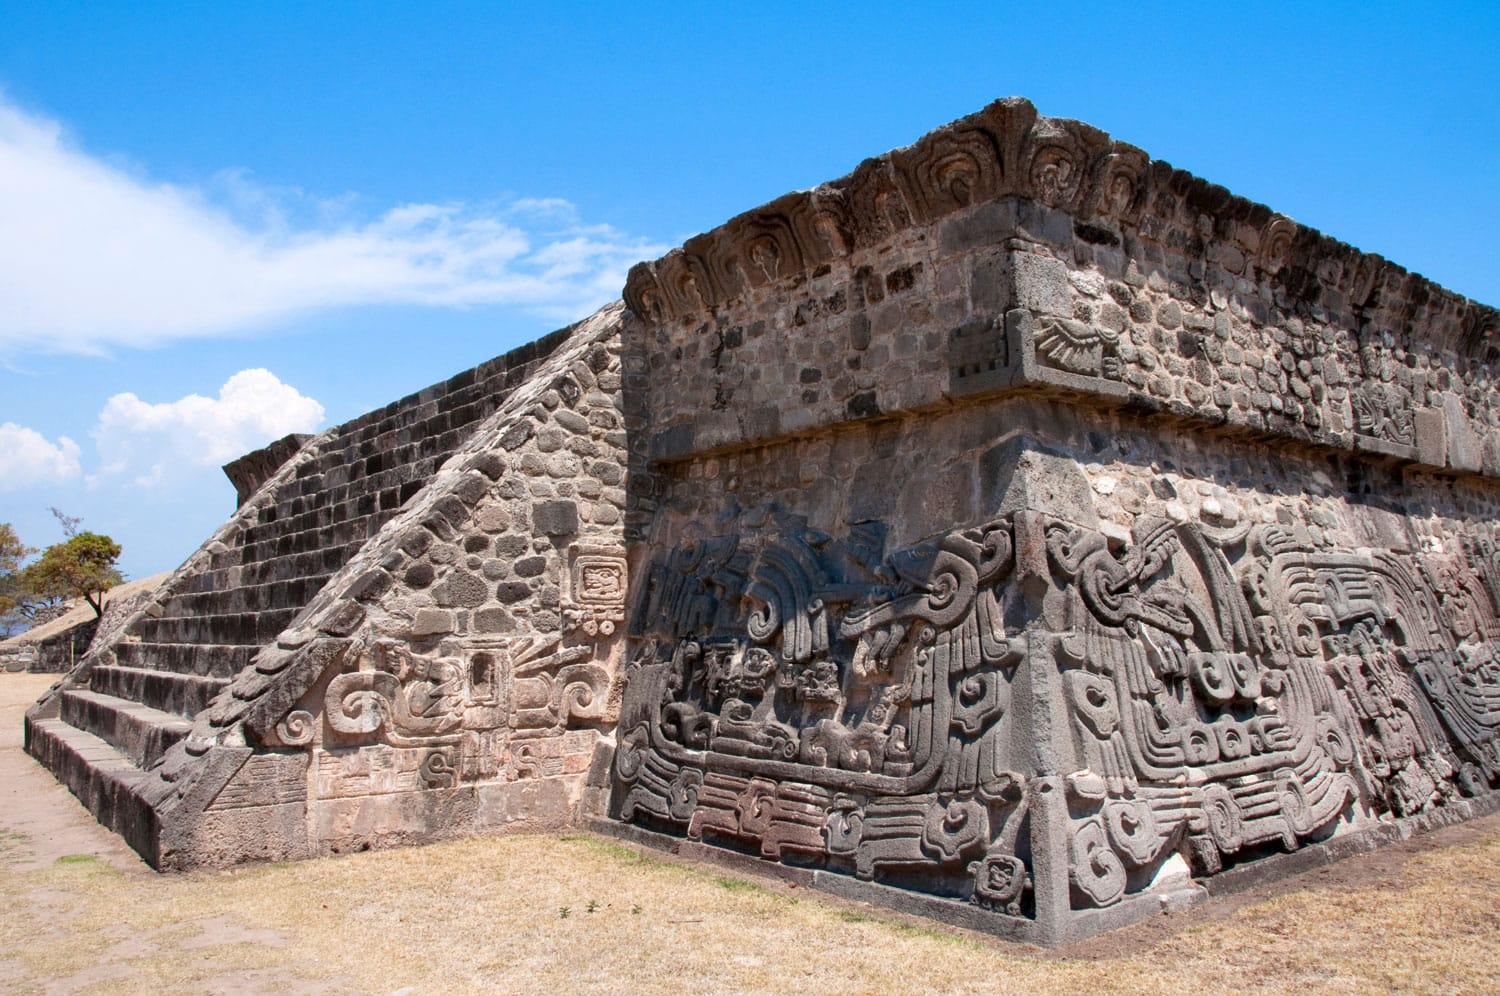 Temple of the Feathered Serpent in Xochicalco in Mexico